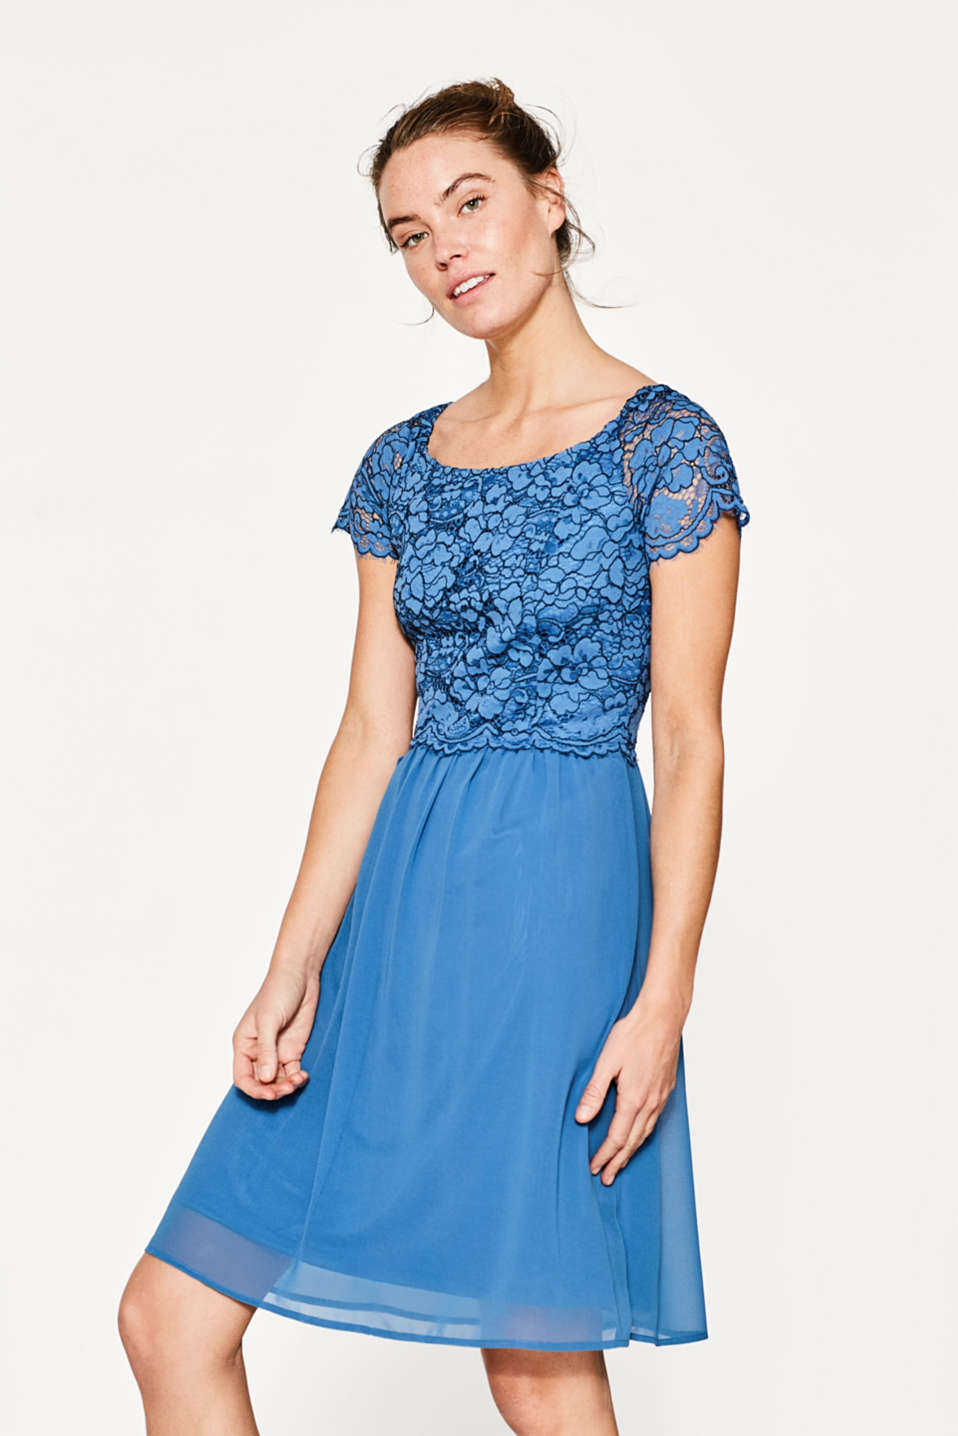 Esprit - Flared dress in lace and chiffon